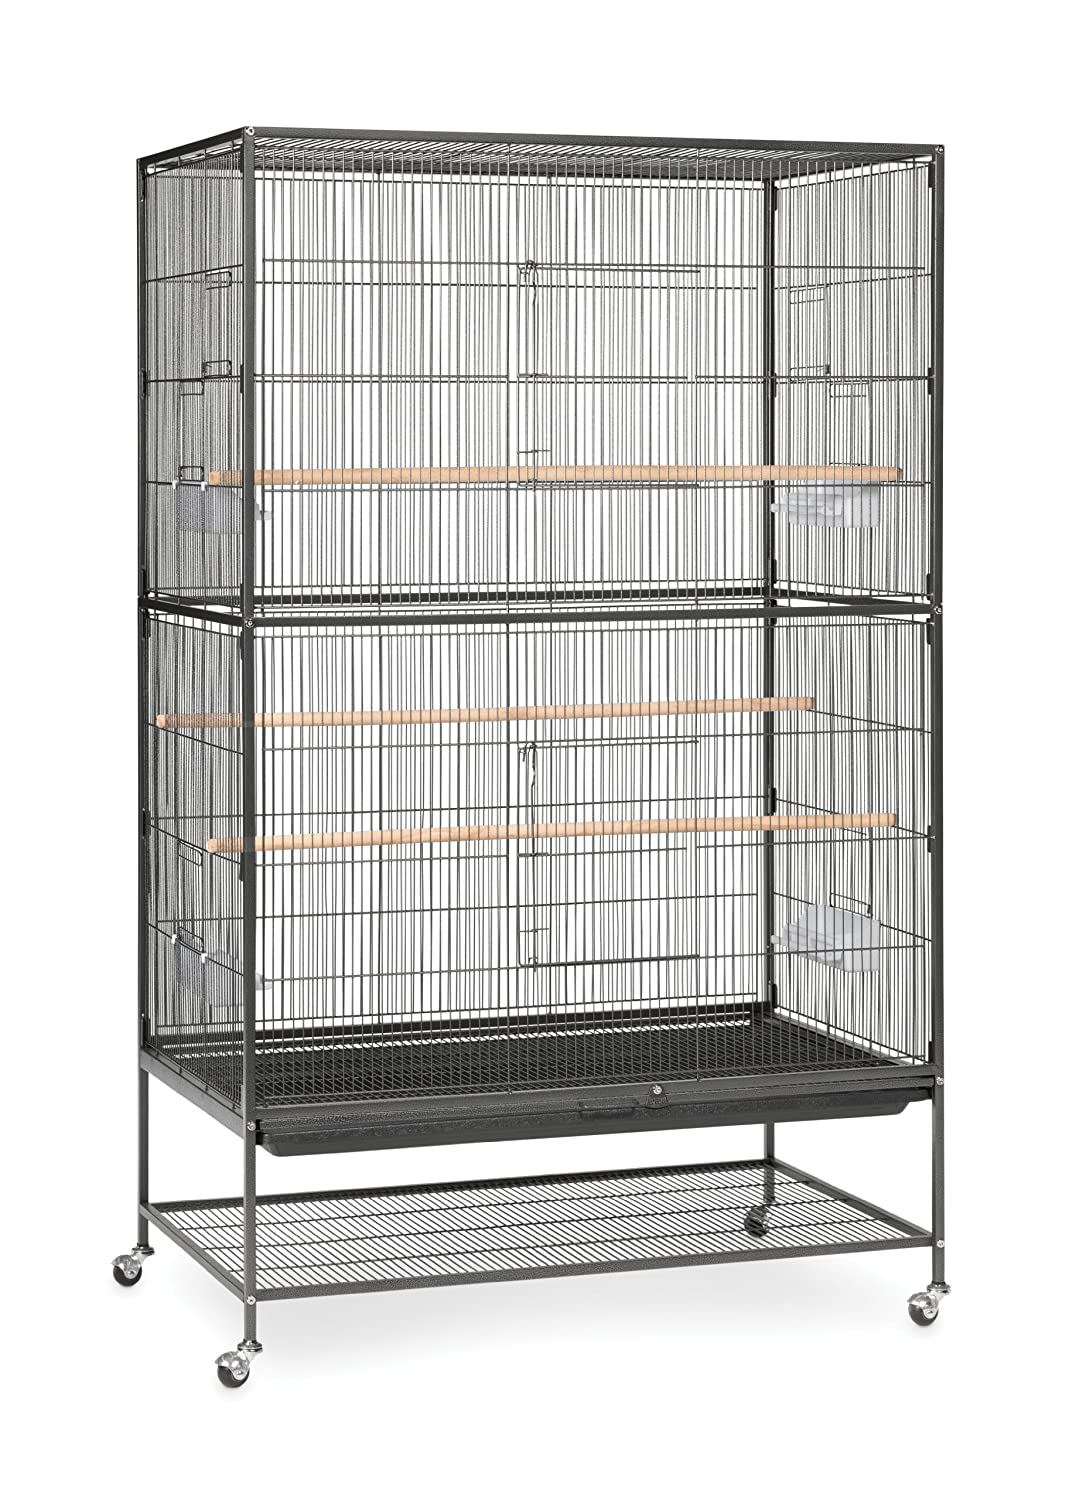 B0002AQ228 Prevue Hendryx Pet Products Wrought Iron Flight Cage 91coxvjfgaL